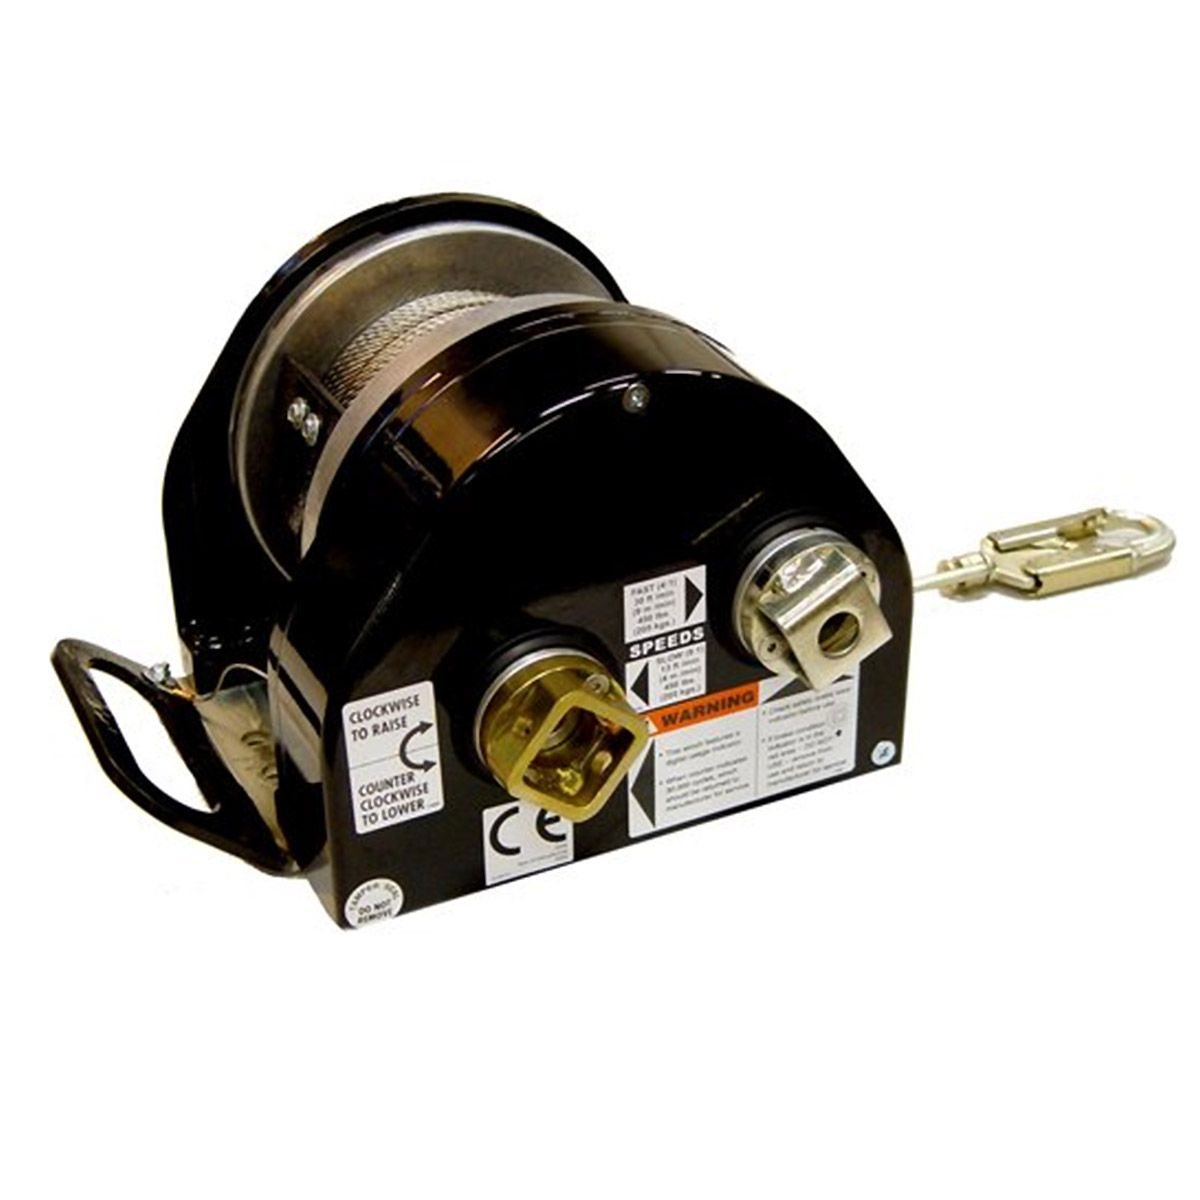 DBI-SALA Advanced Winch - Digital 100 Series - Power Drive